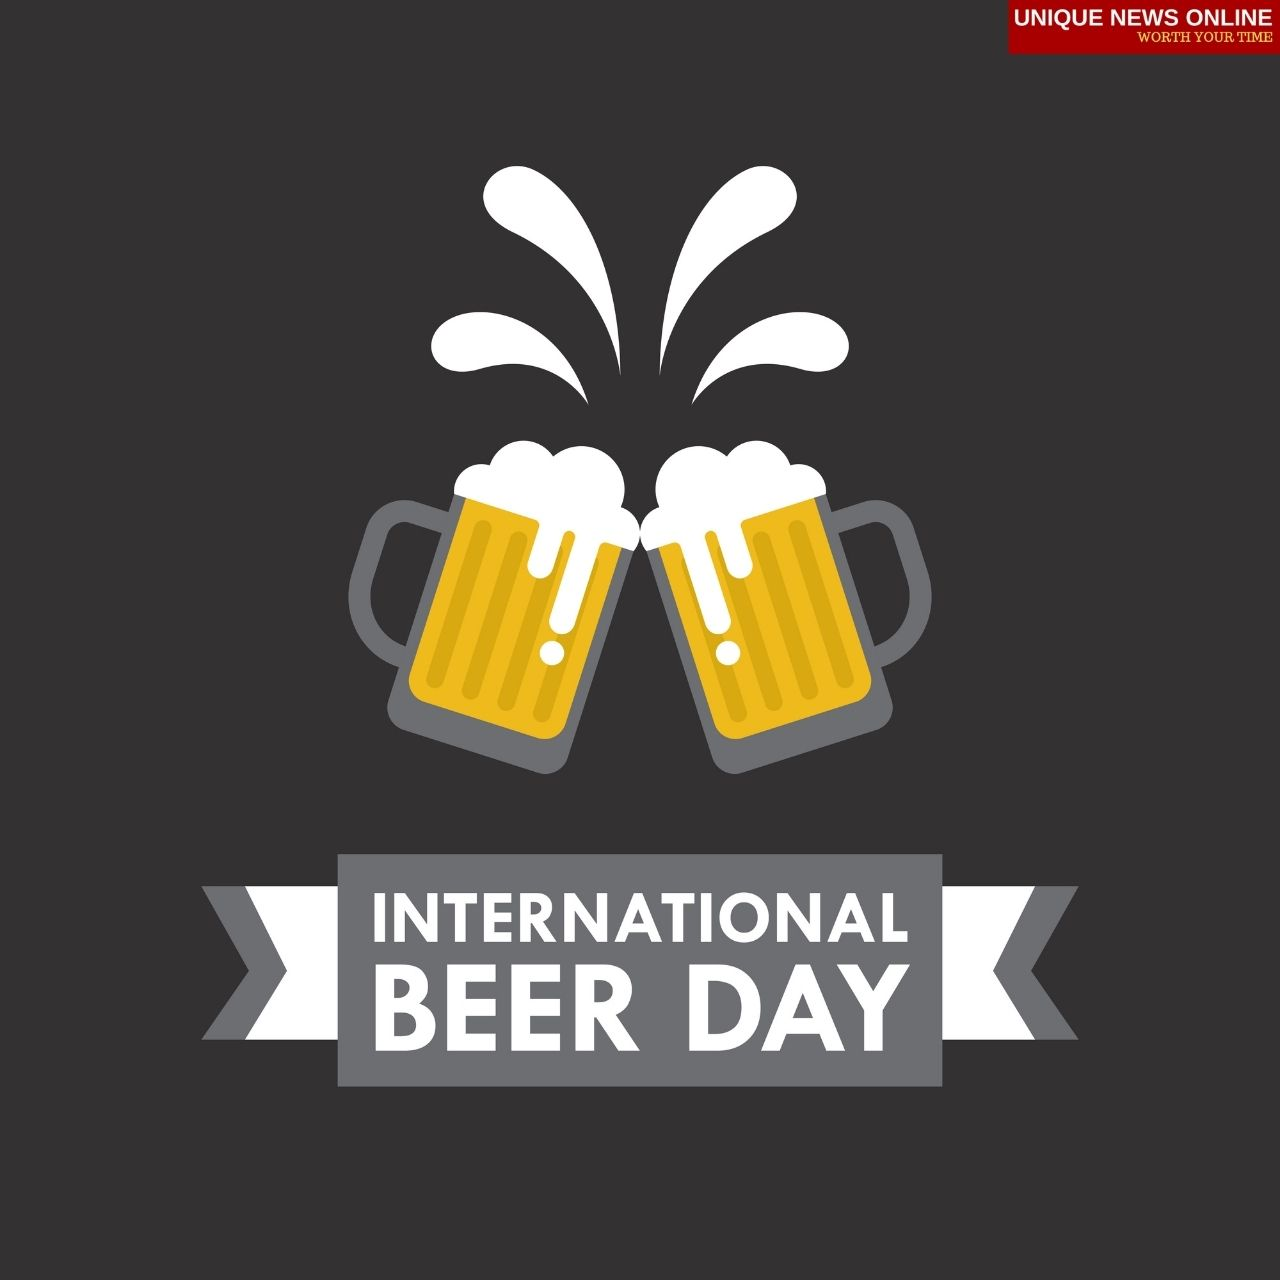 International Beer Day 2021 Quotes, HD Images, Wishes, and Gif to Celebrate the Day